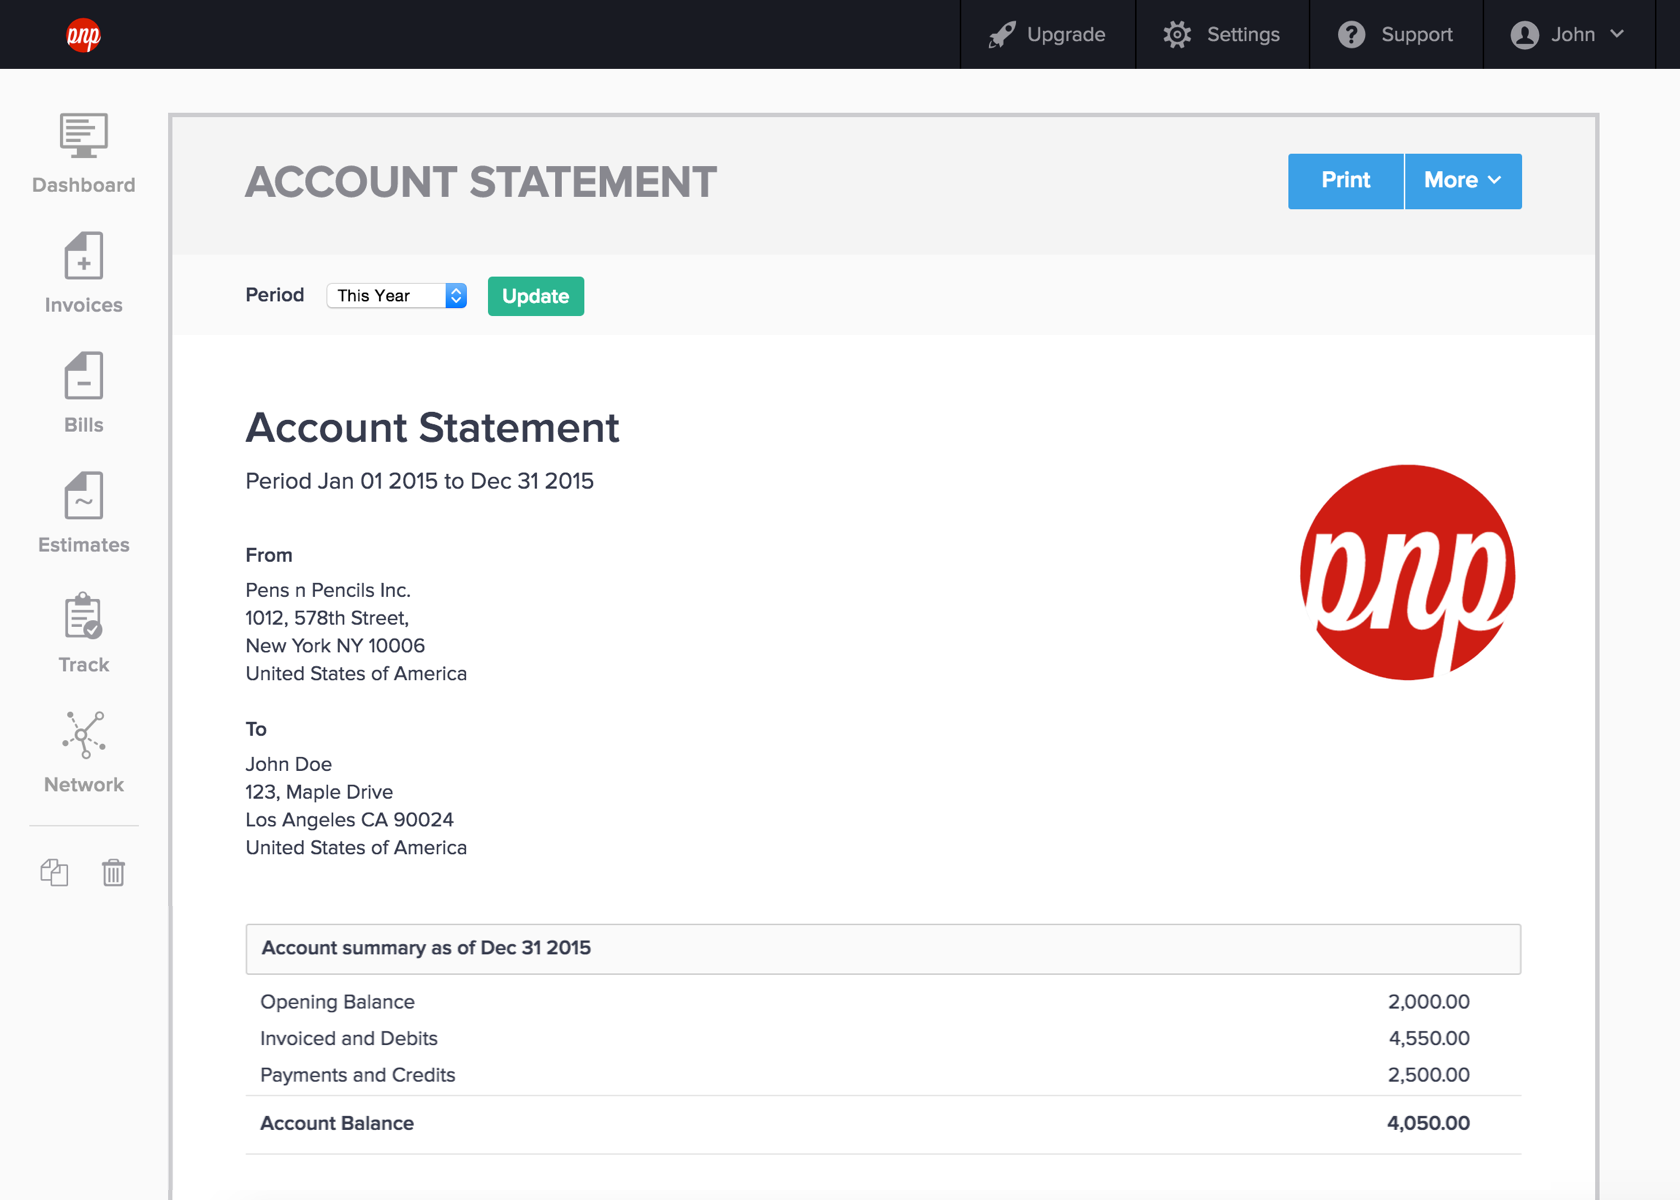 Introducing Account Statements